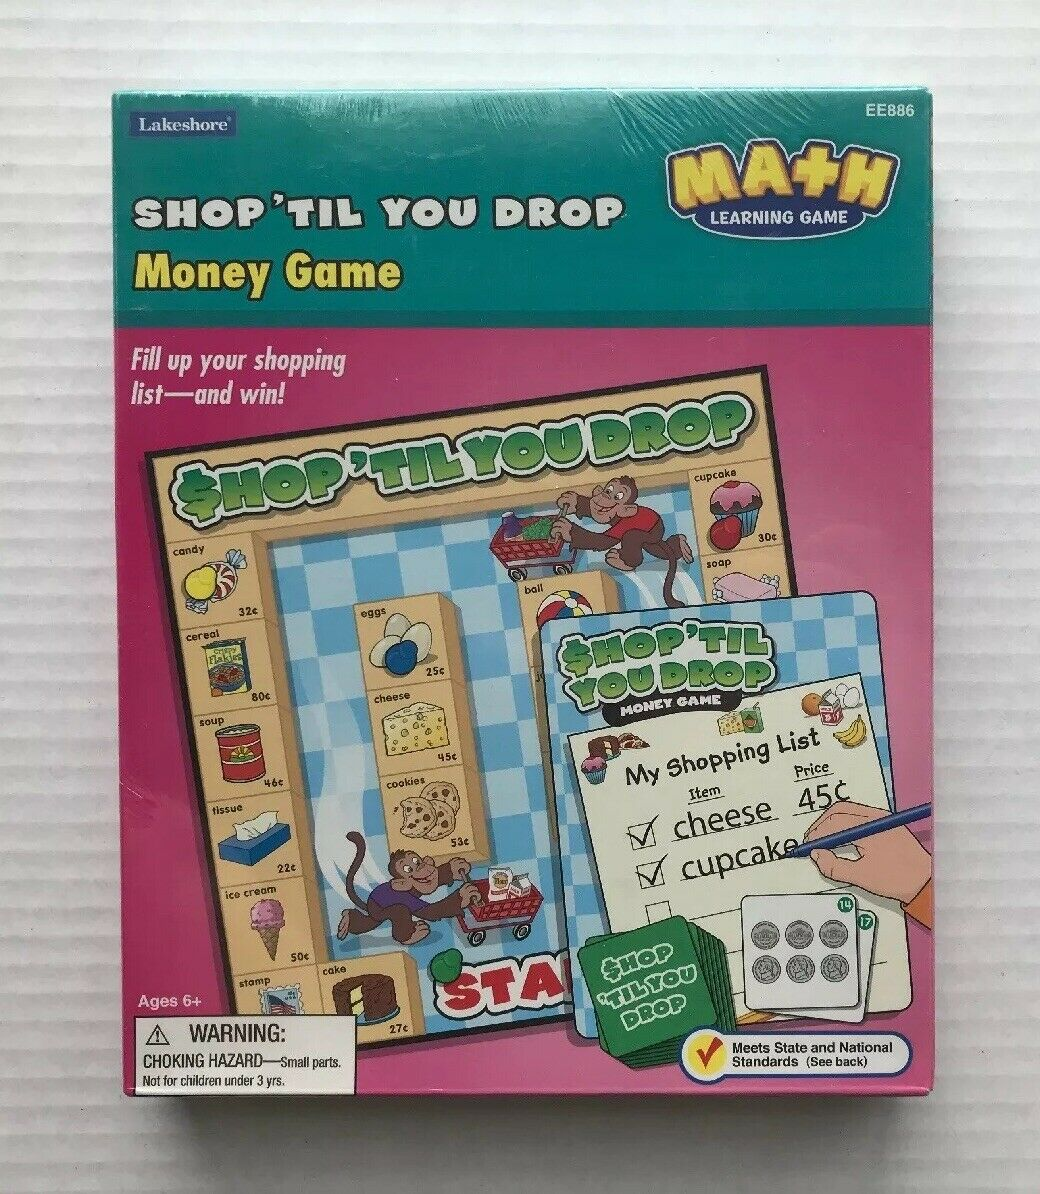 NEW Lakeshore Shop 'Til You Drop Money Math Learning Game Very RARE Sealed!